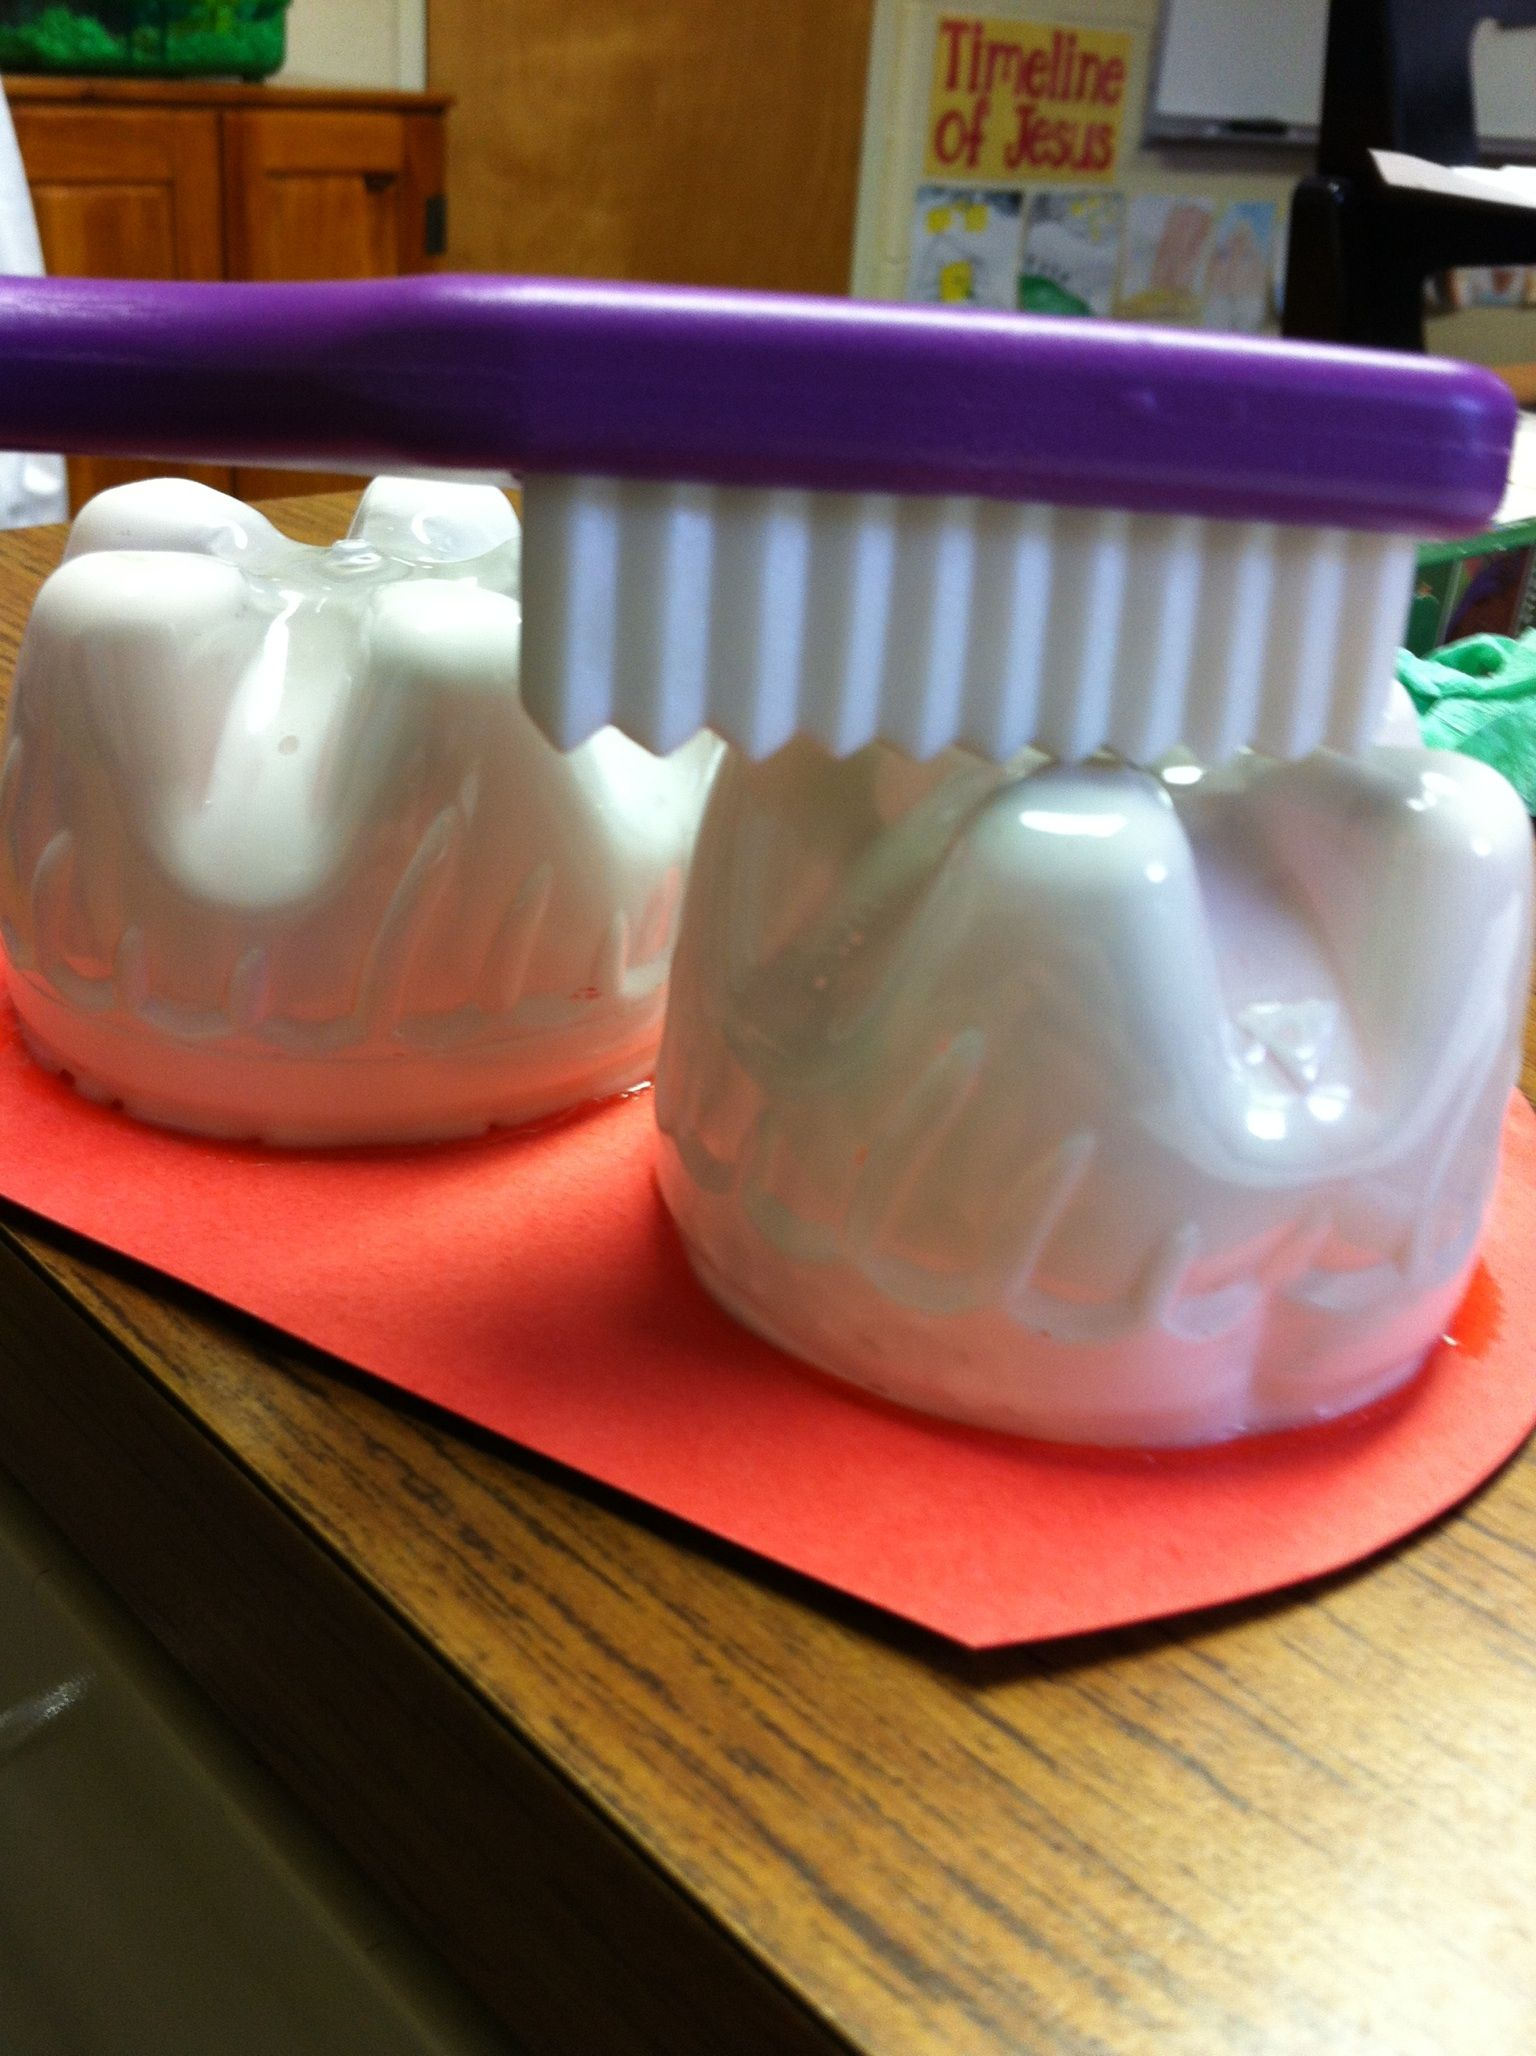 Teeth Made From Bottom Of Plastic Soda Bottles To Teach A